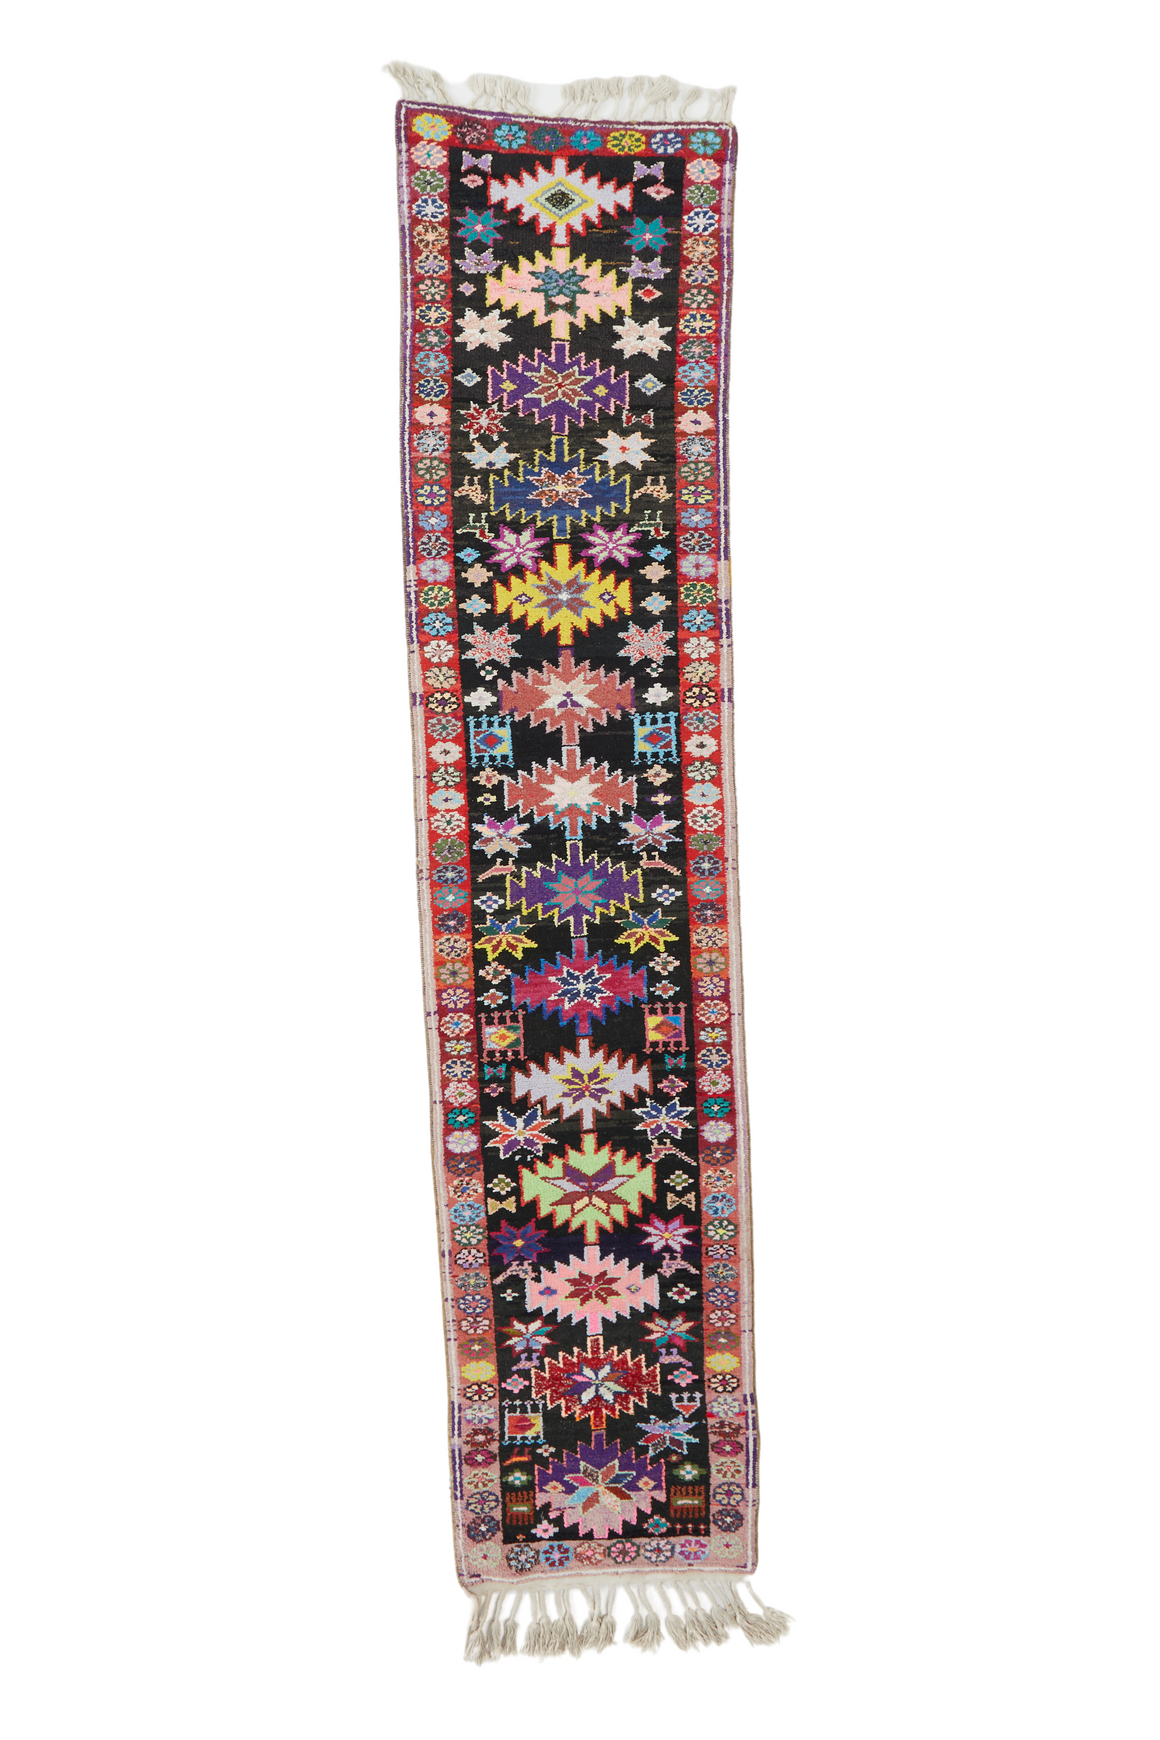 'Eclipse' Vintage Turkish Runner - 2'7'' x 11'11''